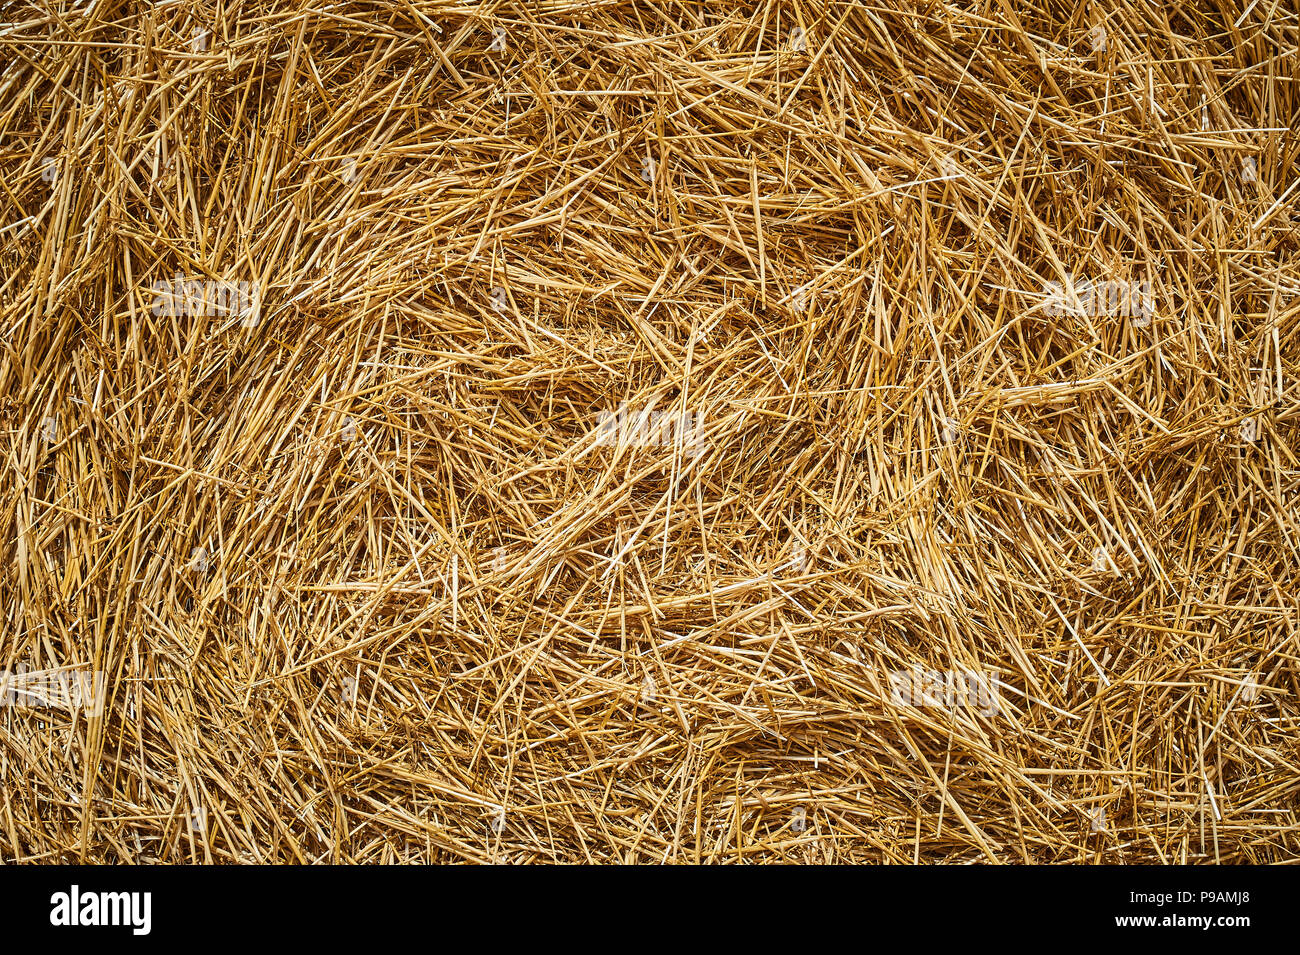 Dry golden yellow straw grass background texture after havesting. Close up - Stock Image